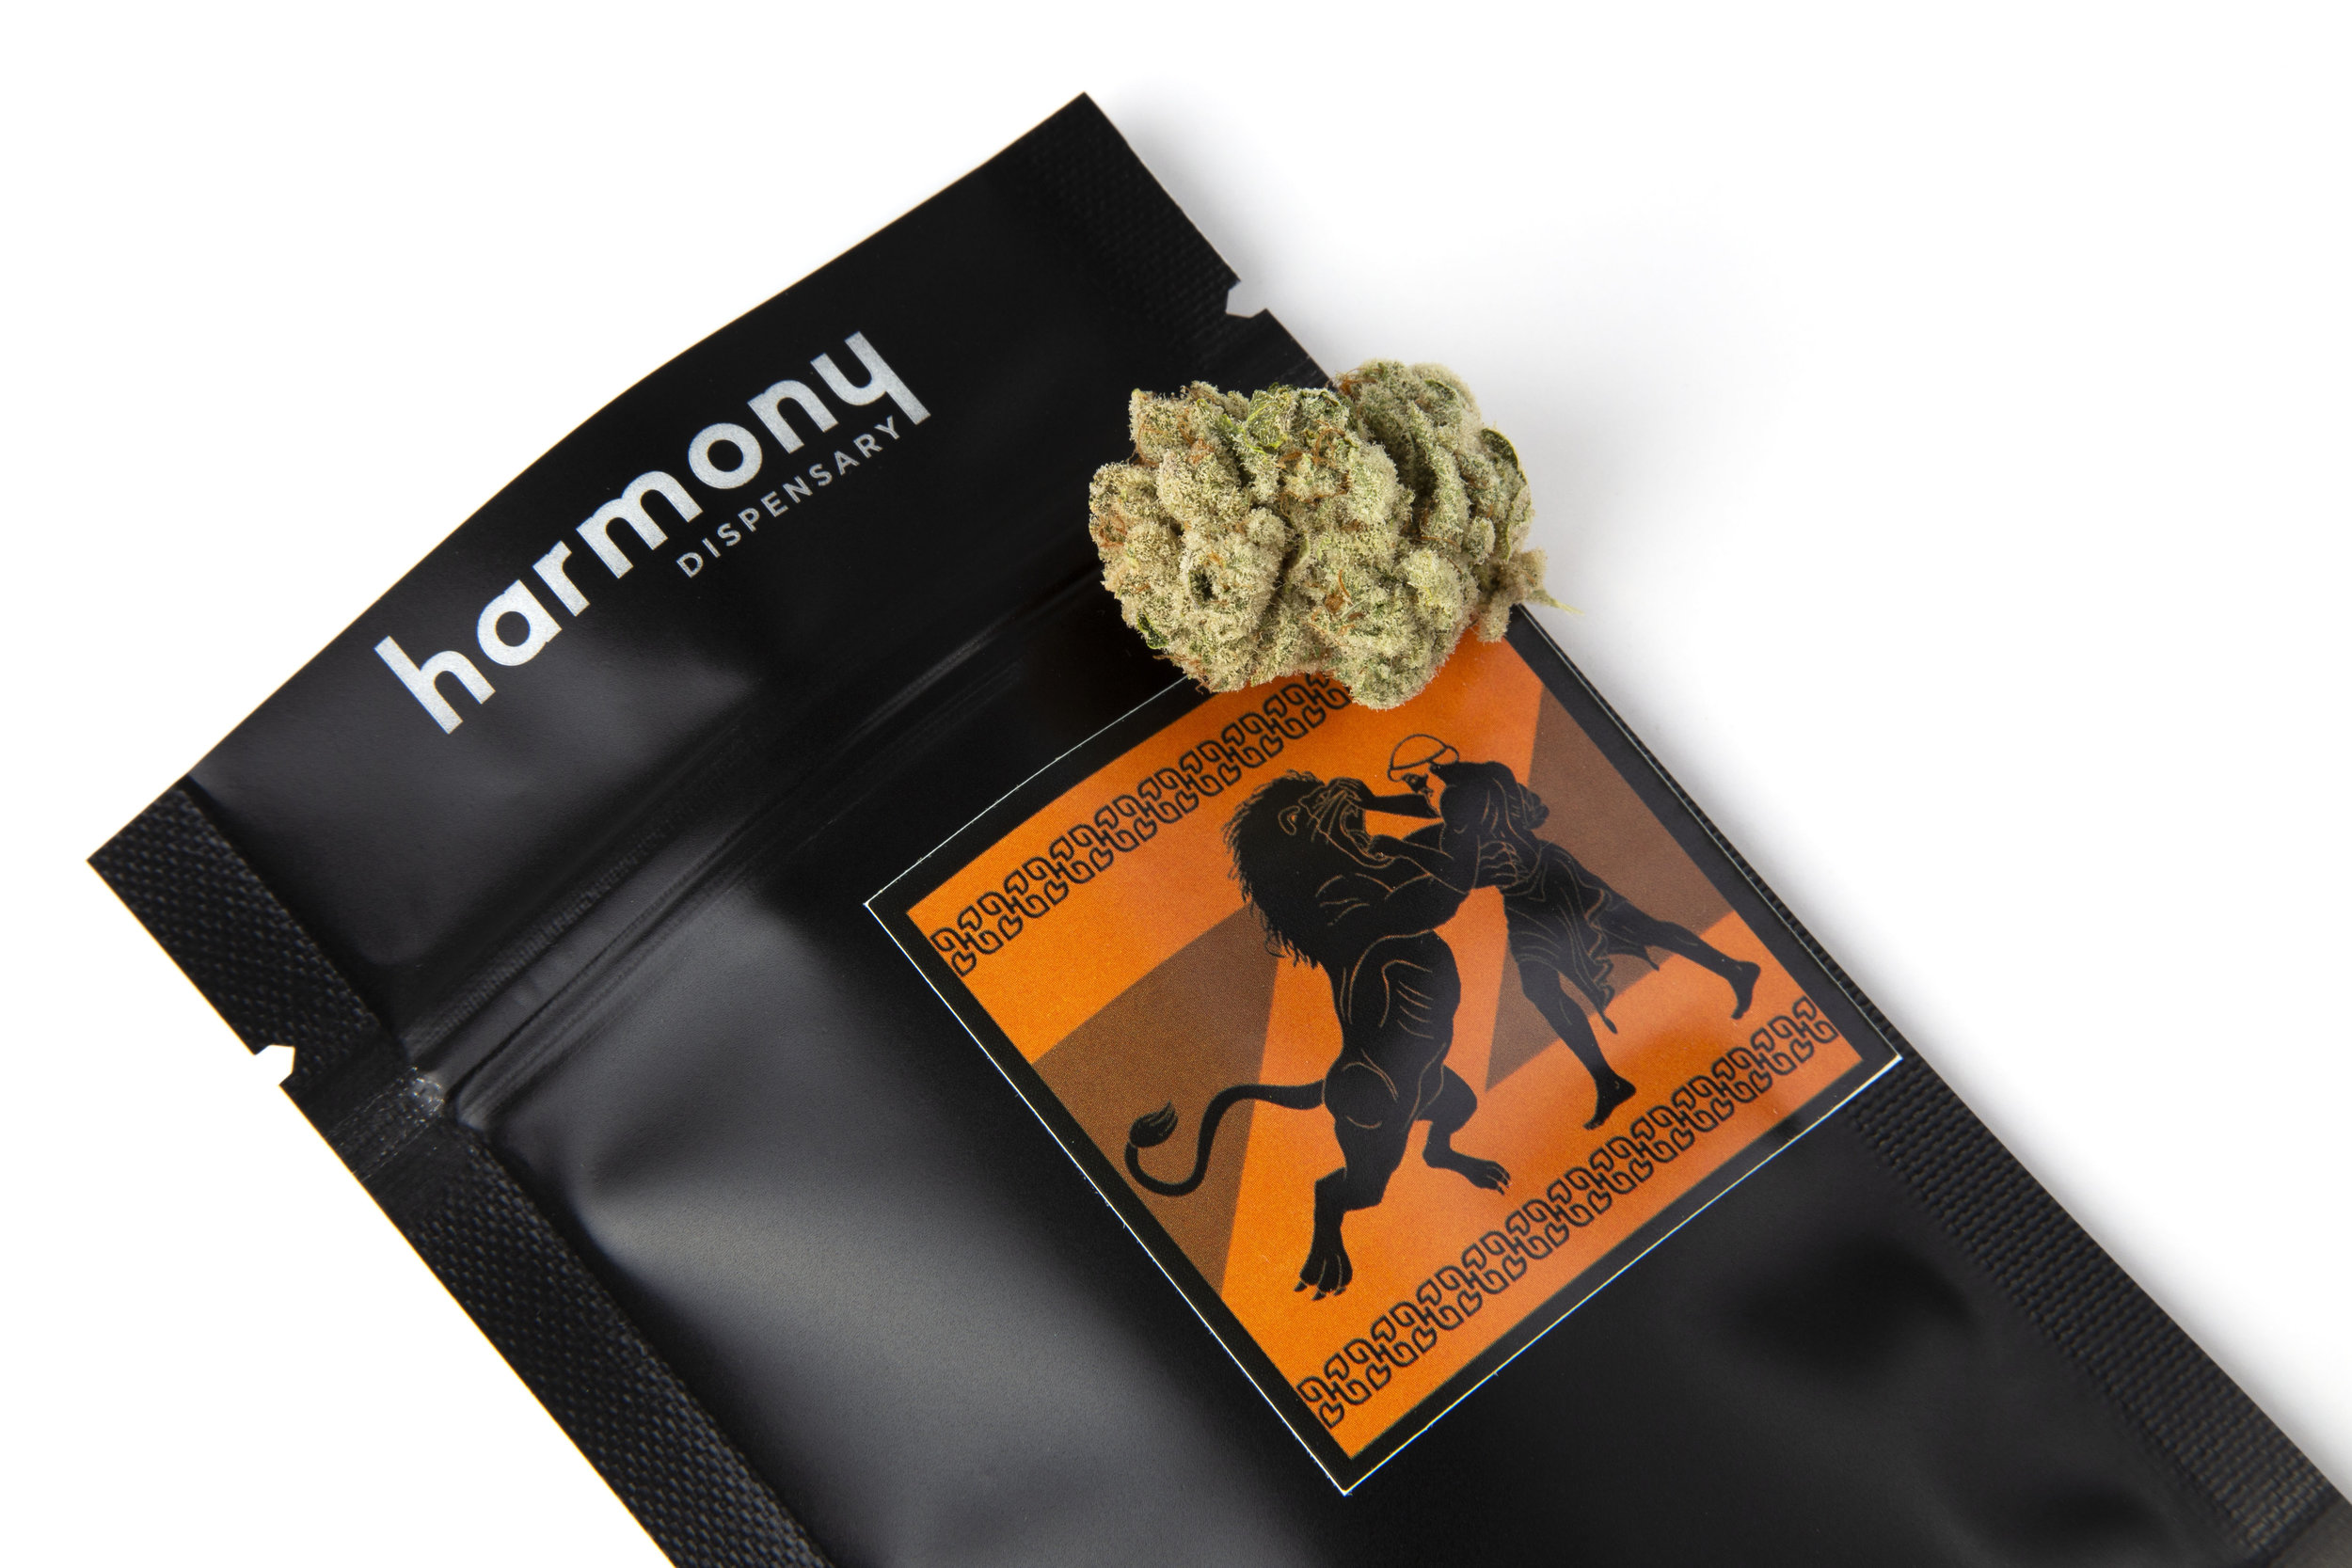 Black Bag - Our Black Bag Line of product is packaged in custom light and smell proof polyethylene black bags, and is in whole flower form. People who enjoy the ritual of breaking up and smoking top shelf flower will enjoy our Black Bag Line.